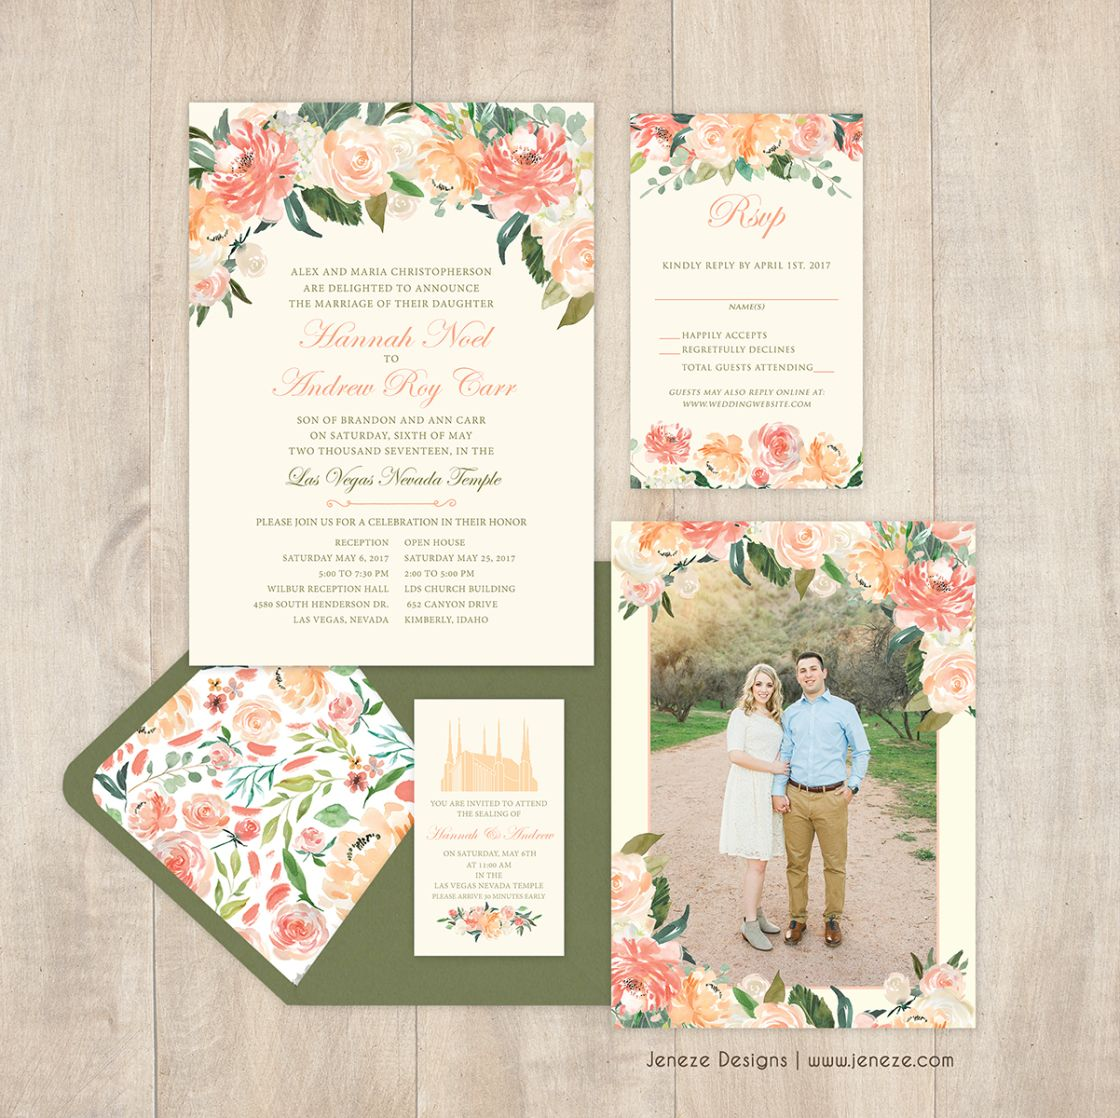 Design Wedding Invitations: Pink And Peach Floral Wedding Invitations, Perfect For A